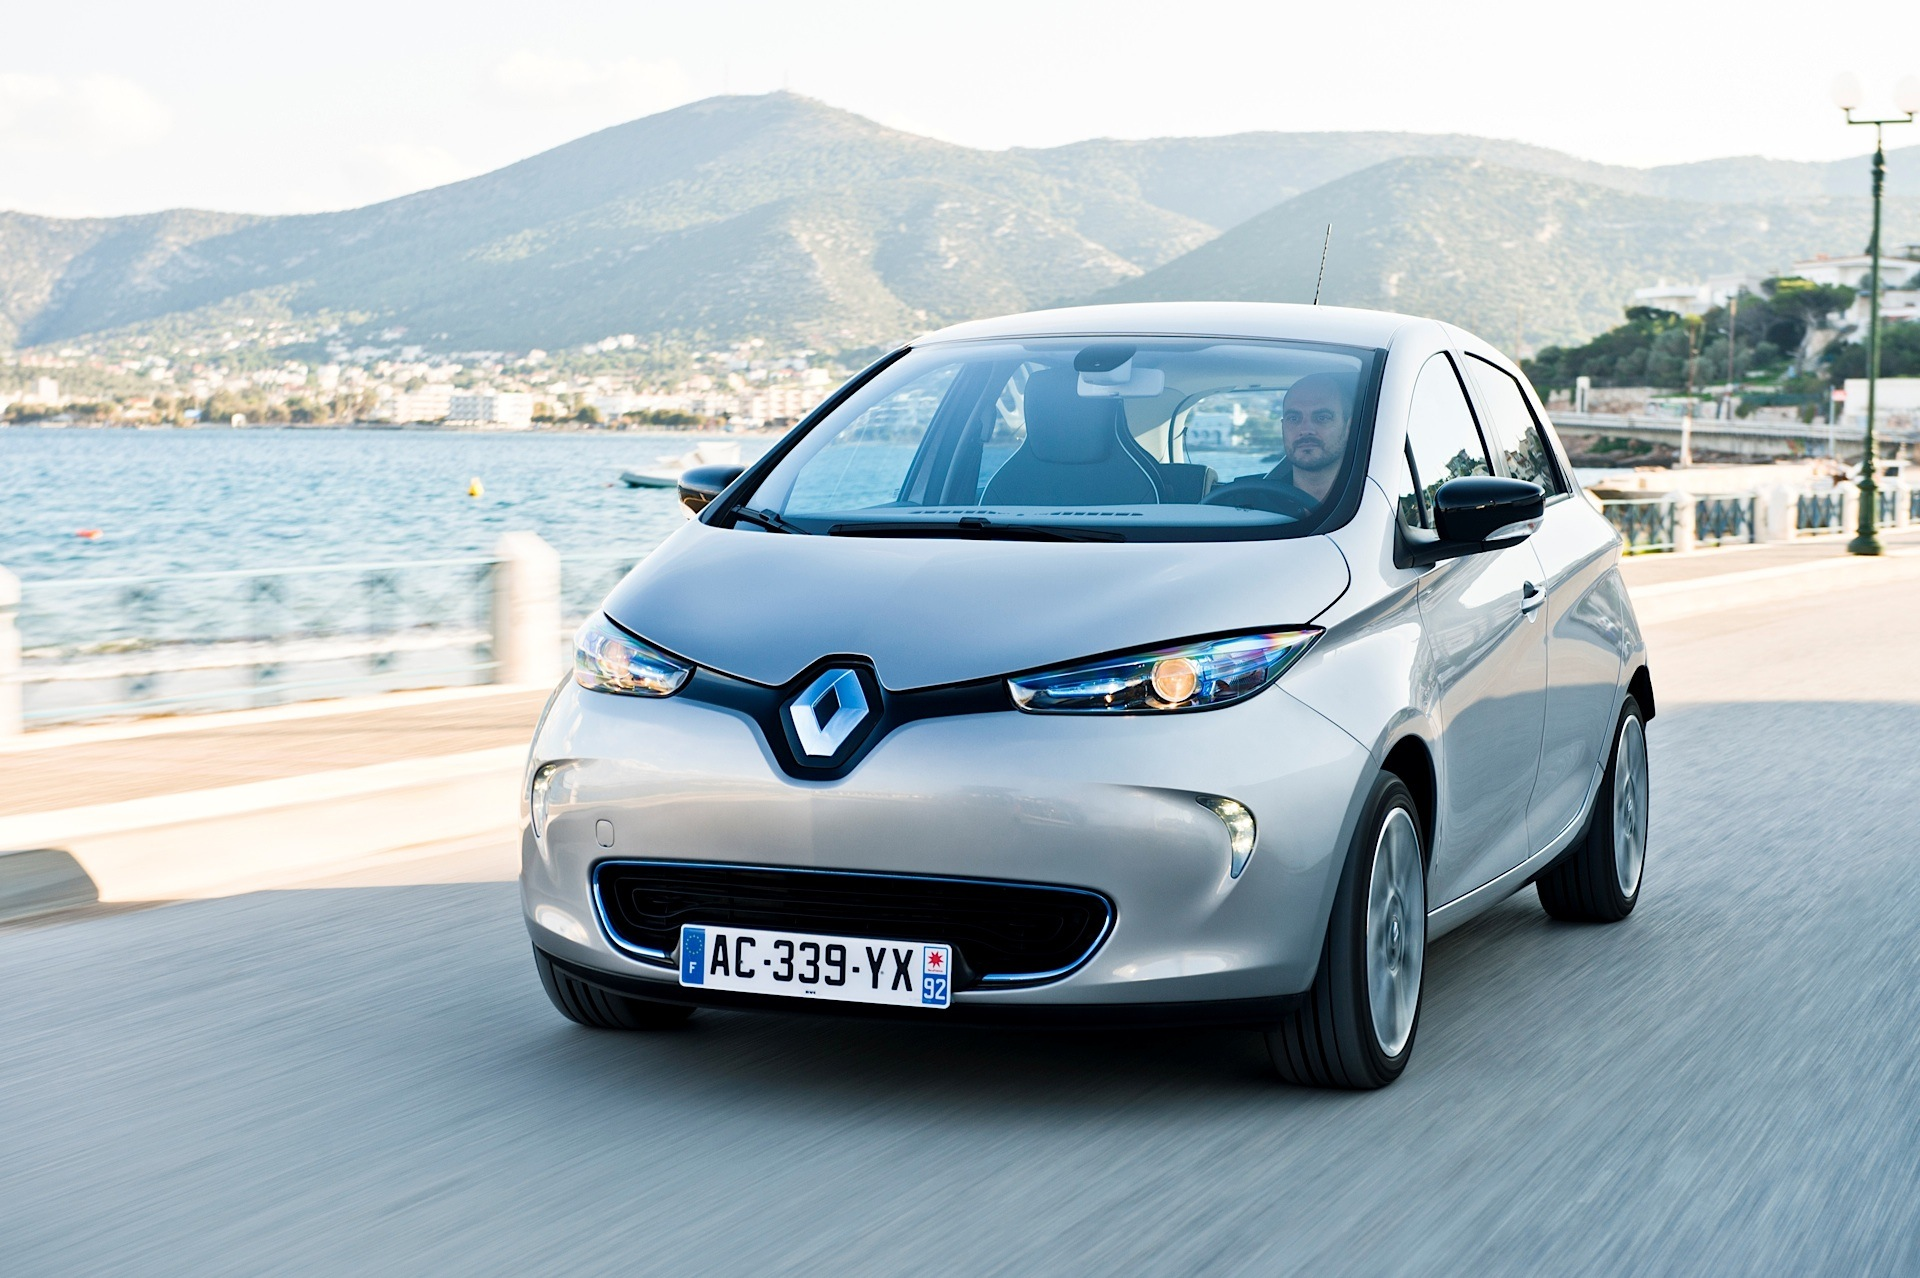 renault zoe specs photos 2013 2014 2015 2016 2017 2018 autoevolution. Black Bedroom Furniture Sets. Home Design Ideas